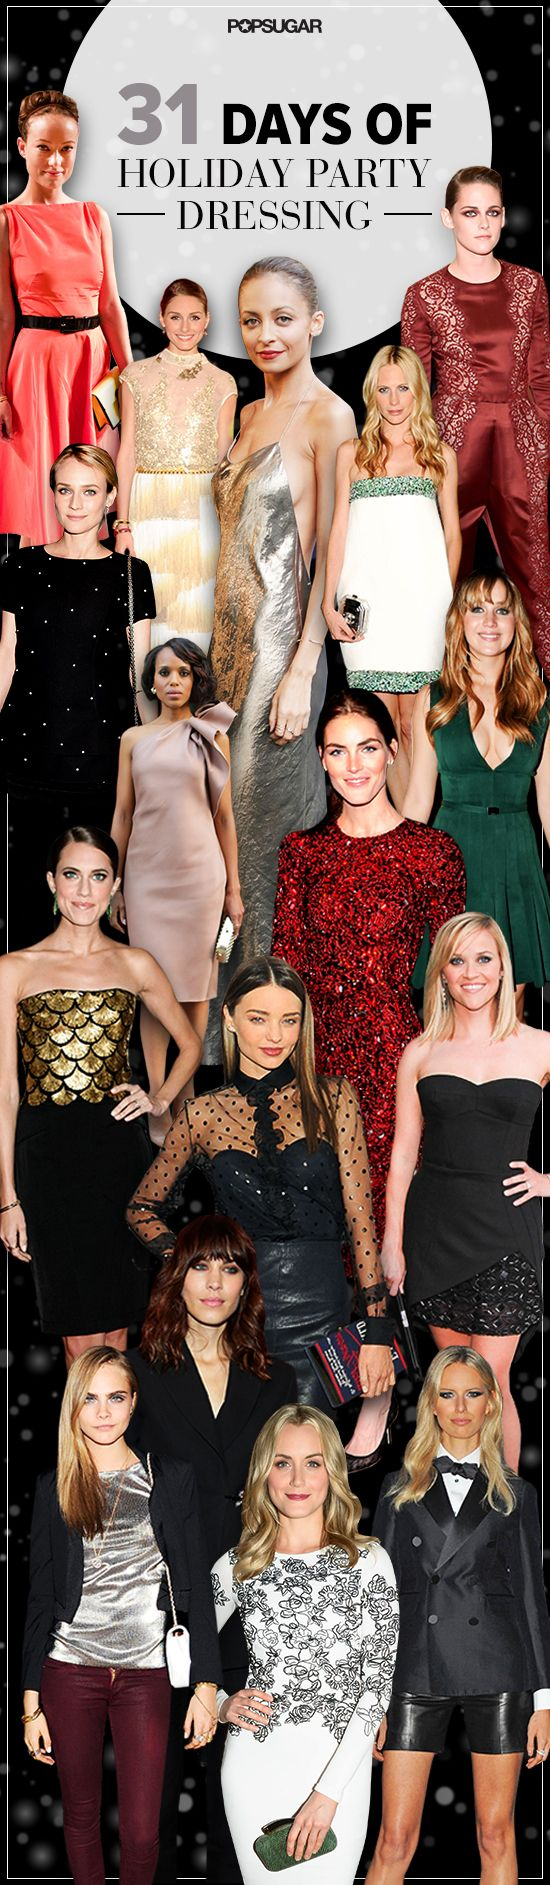 A month's worth of perfect #holiday party outfits